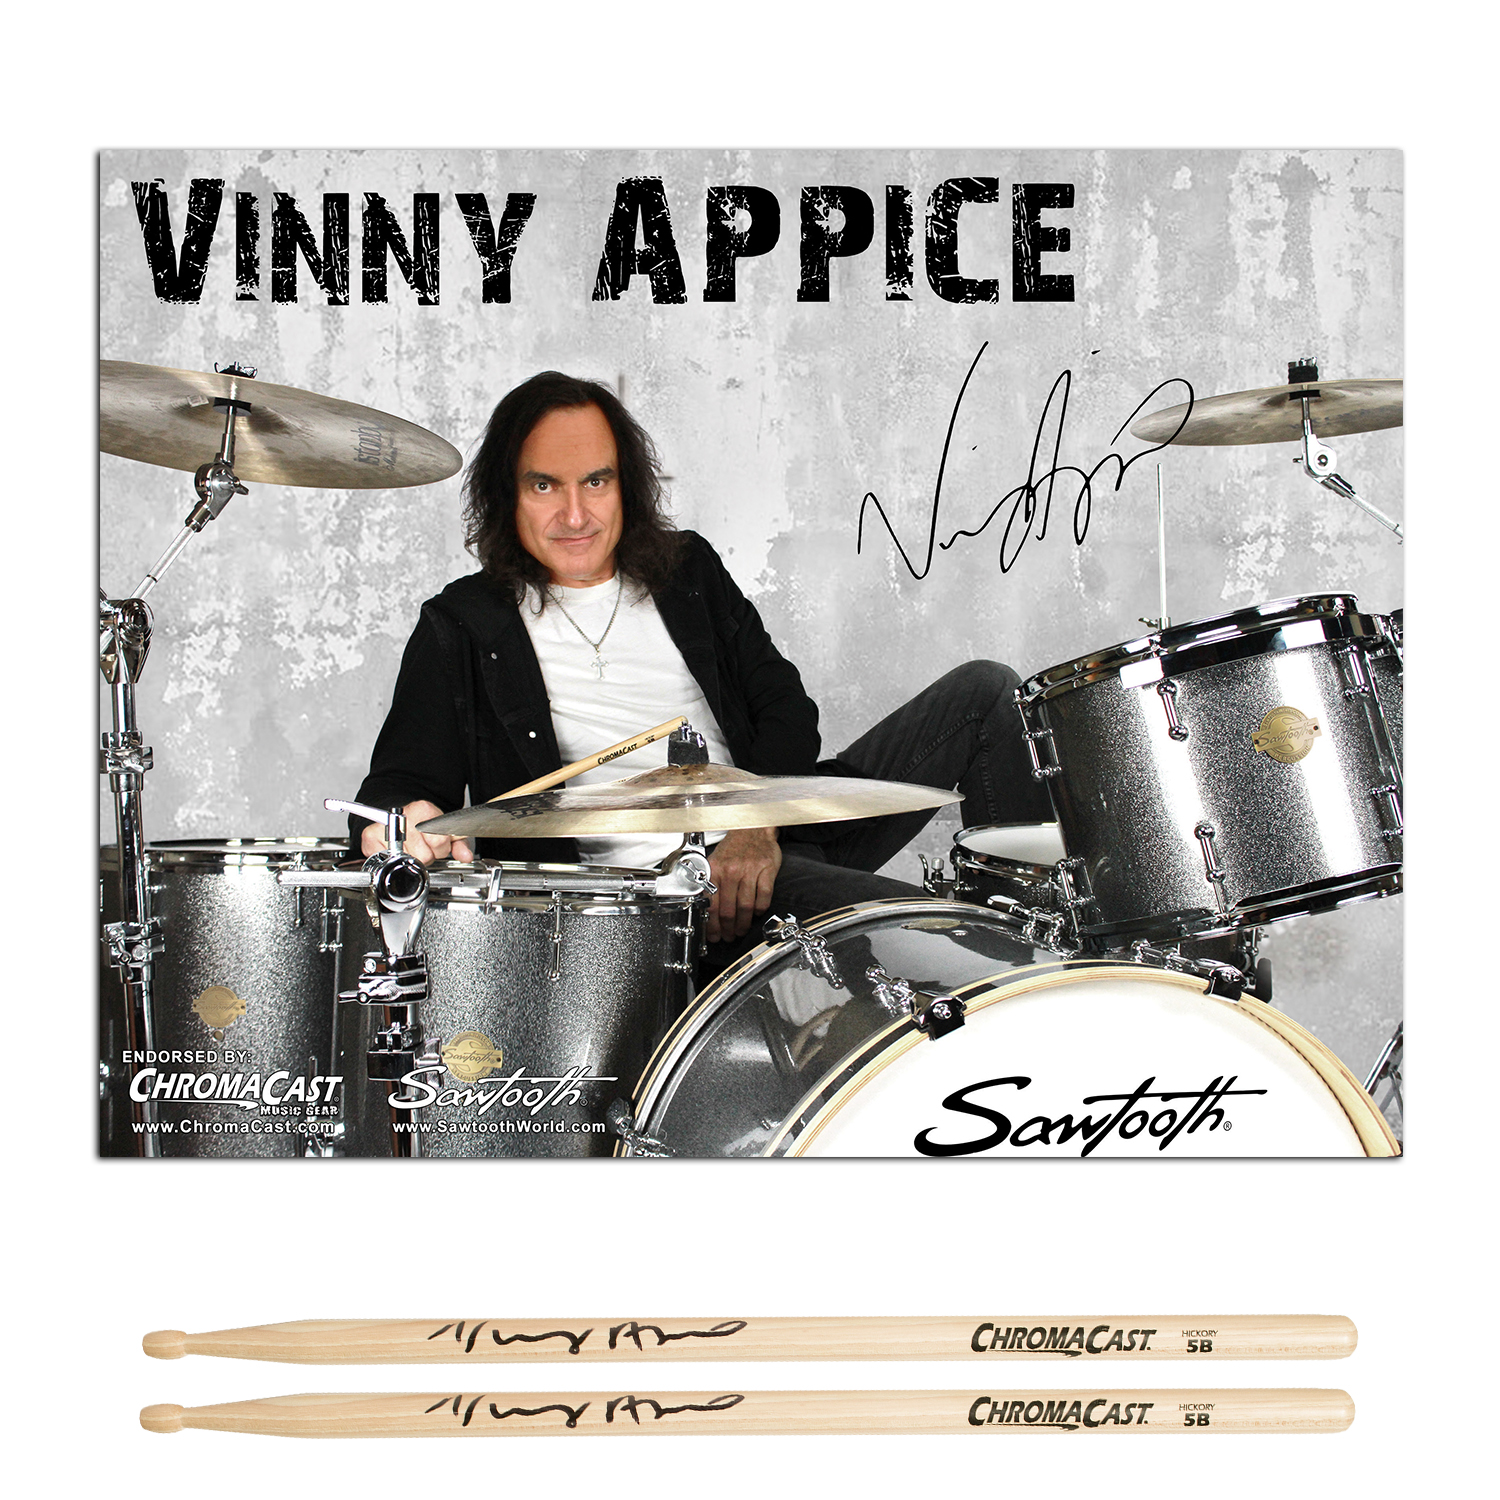 Vinny Appice Poster Pack, Natural 5B